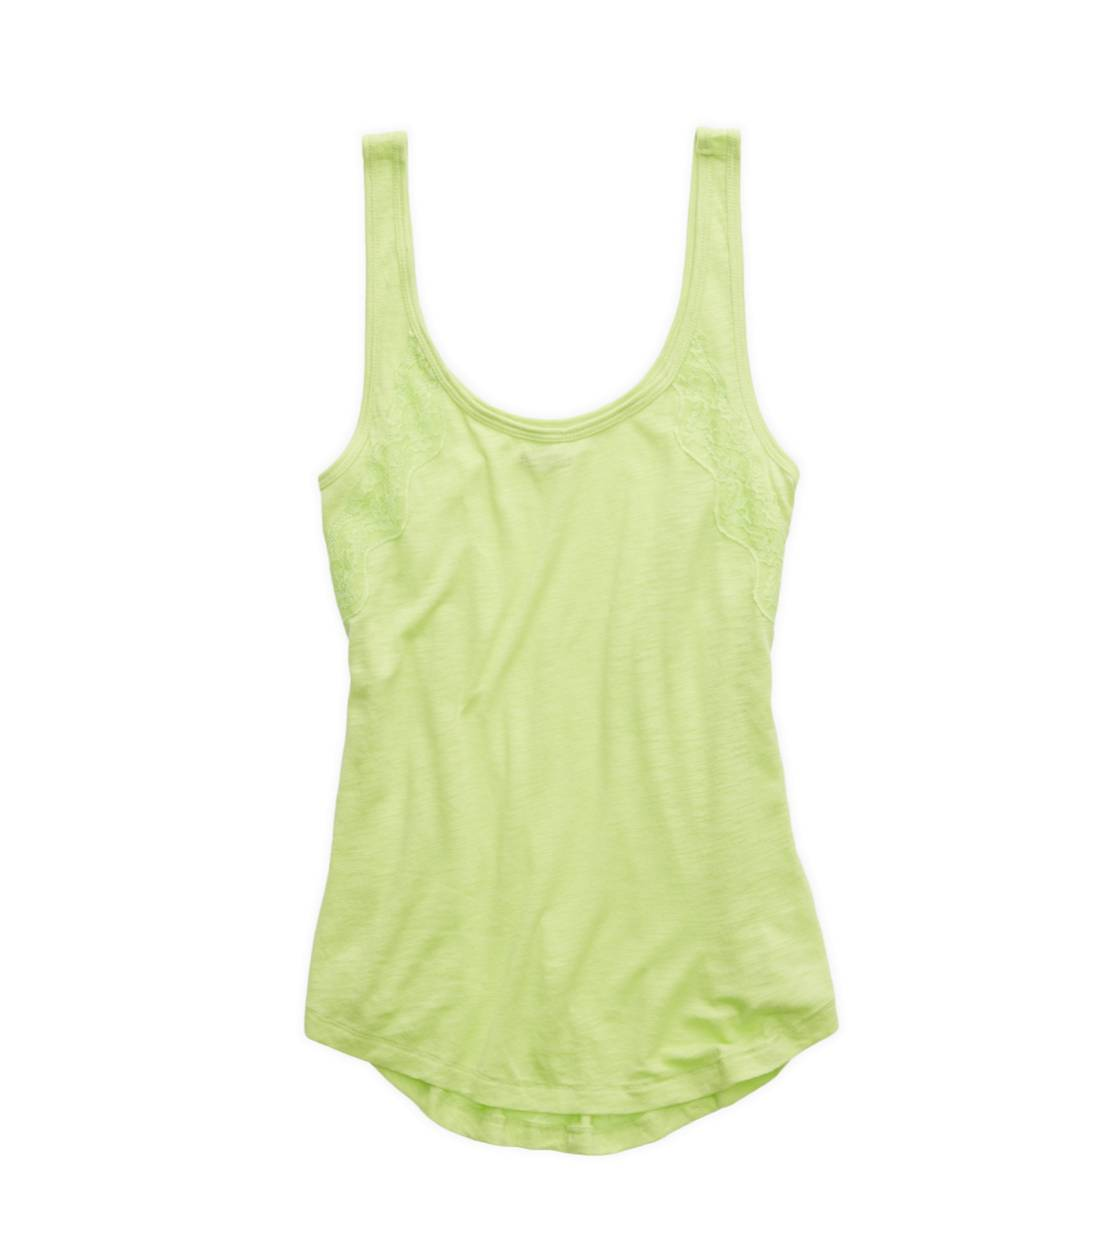 Sharp Green Aerie Lacey Tank